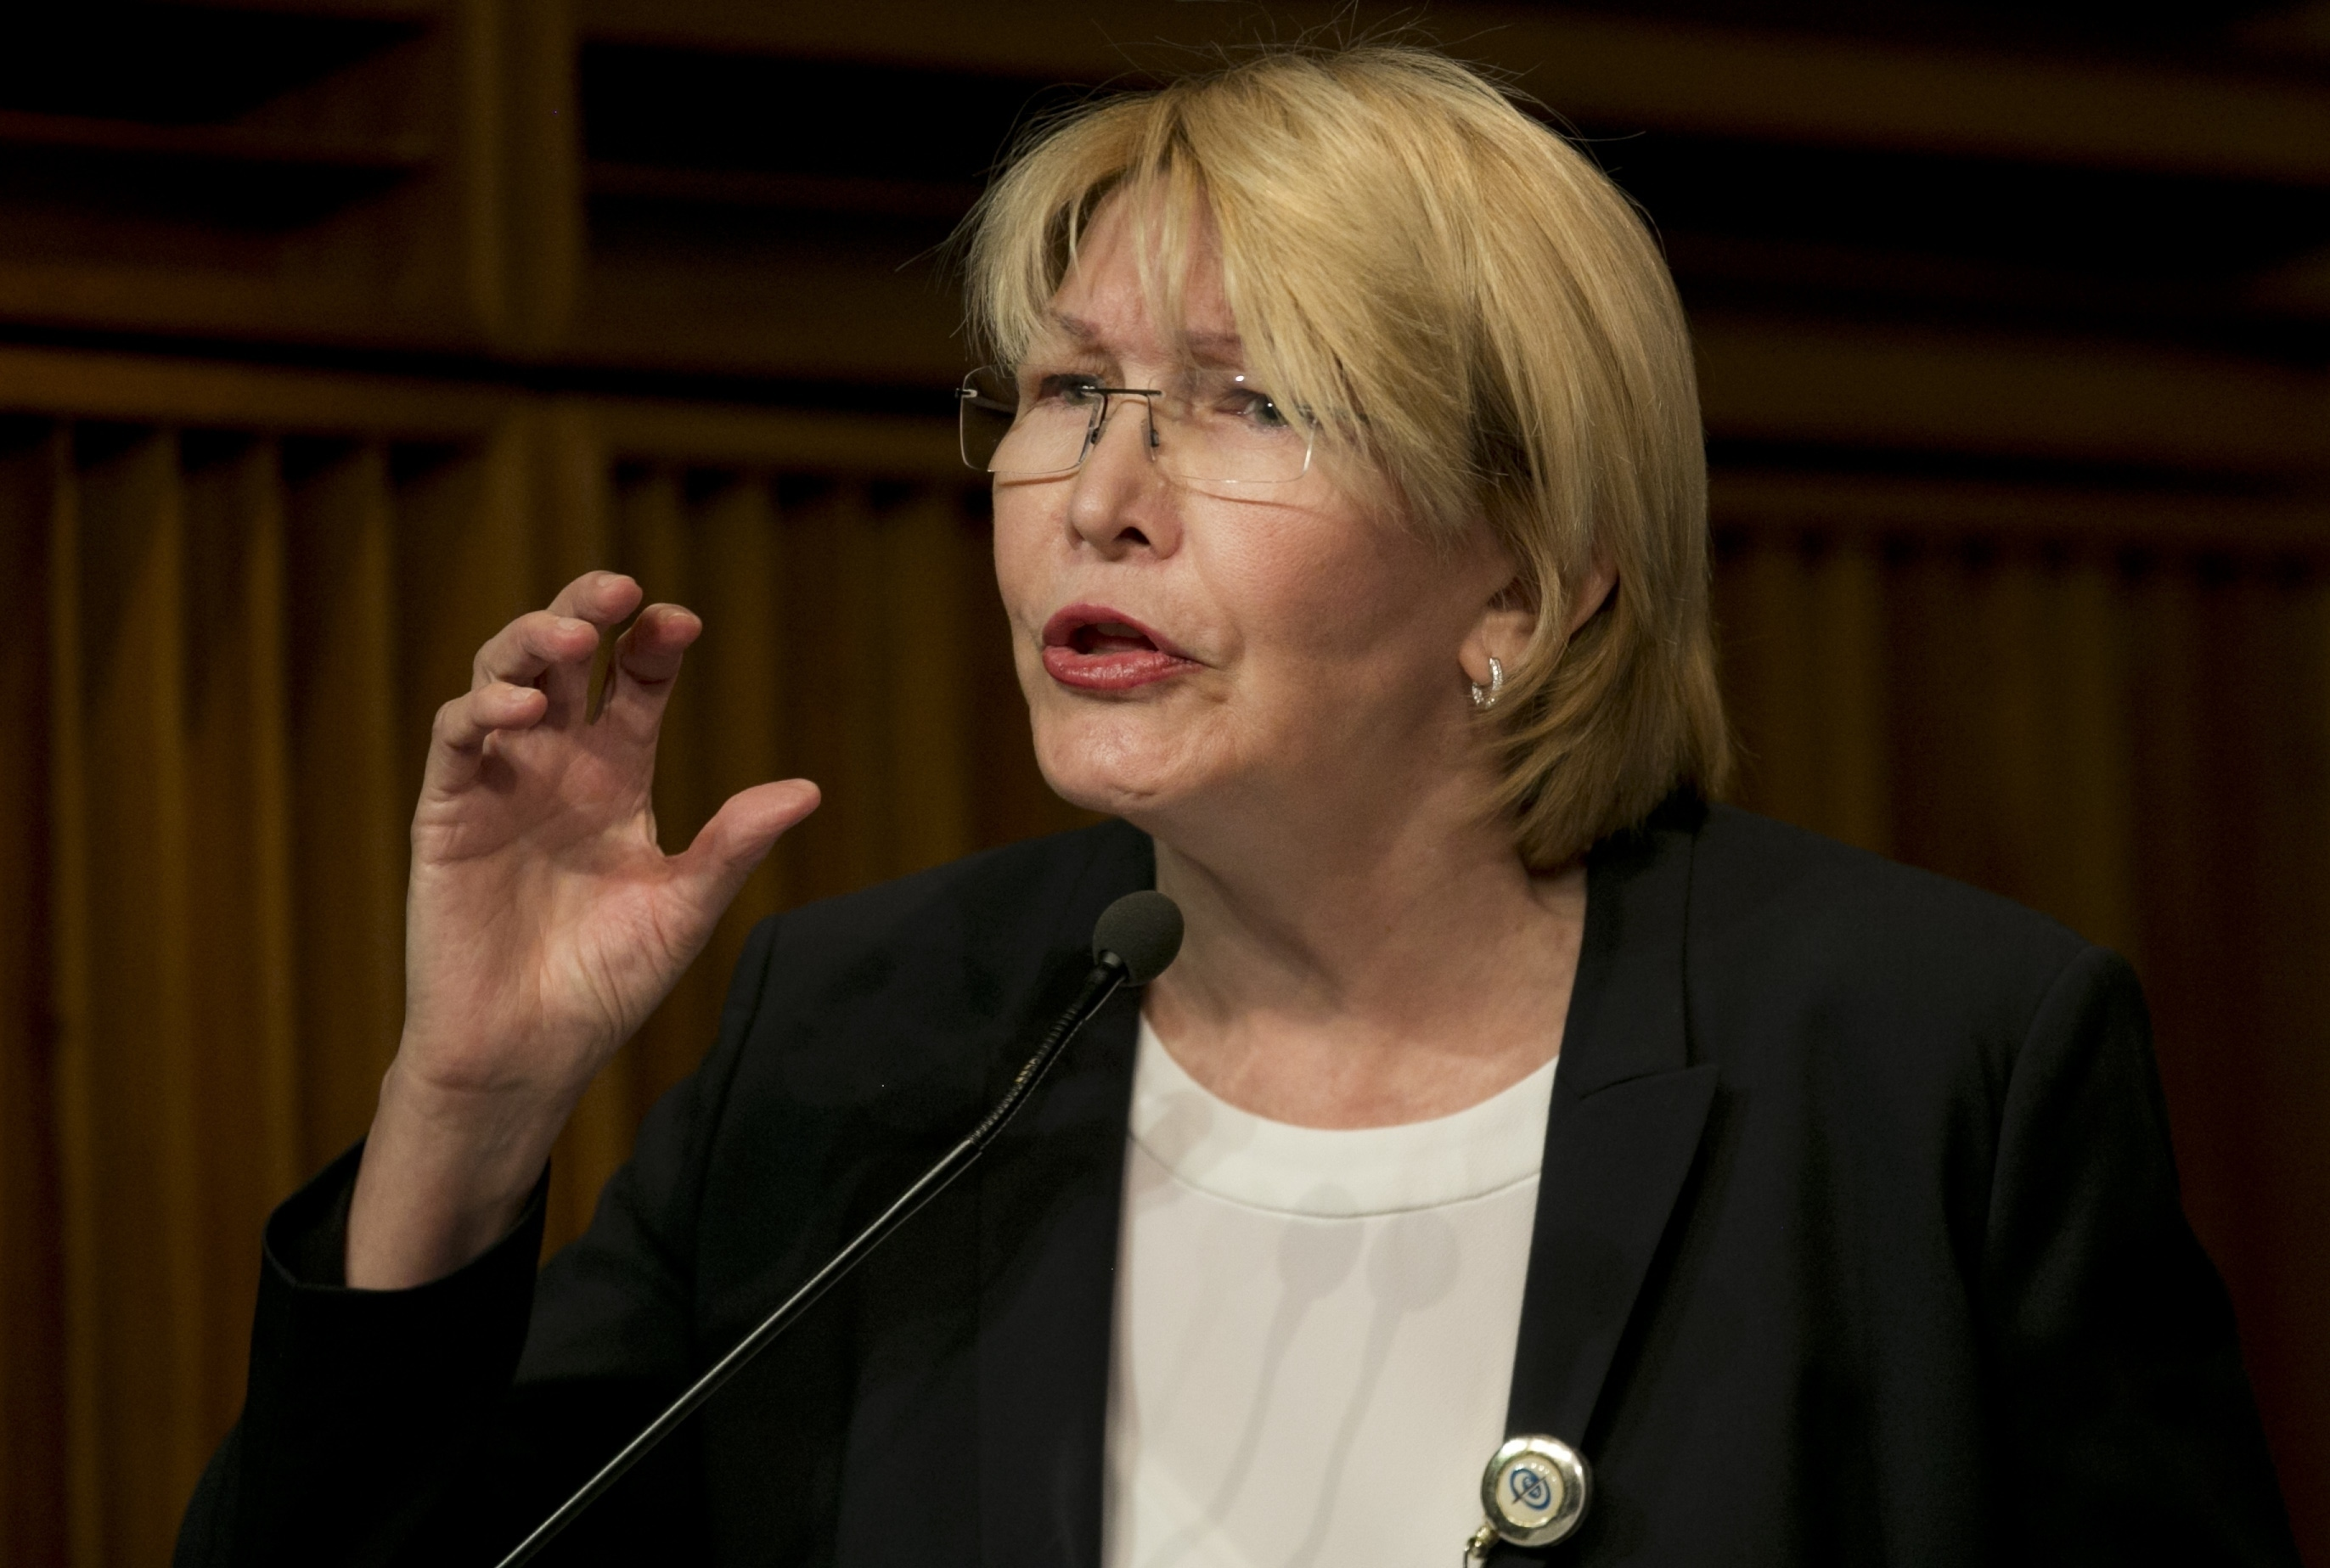 FILE - In this April 25, 2017, photo, Venezuela's Chief Prosecutor Luisa Ortega speaks during a news conference at her office in Caracas, Venezuela. Ortega has ordered some detained protesters to be freed after determining there was not enough eviden...